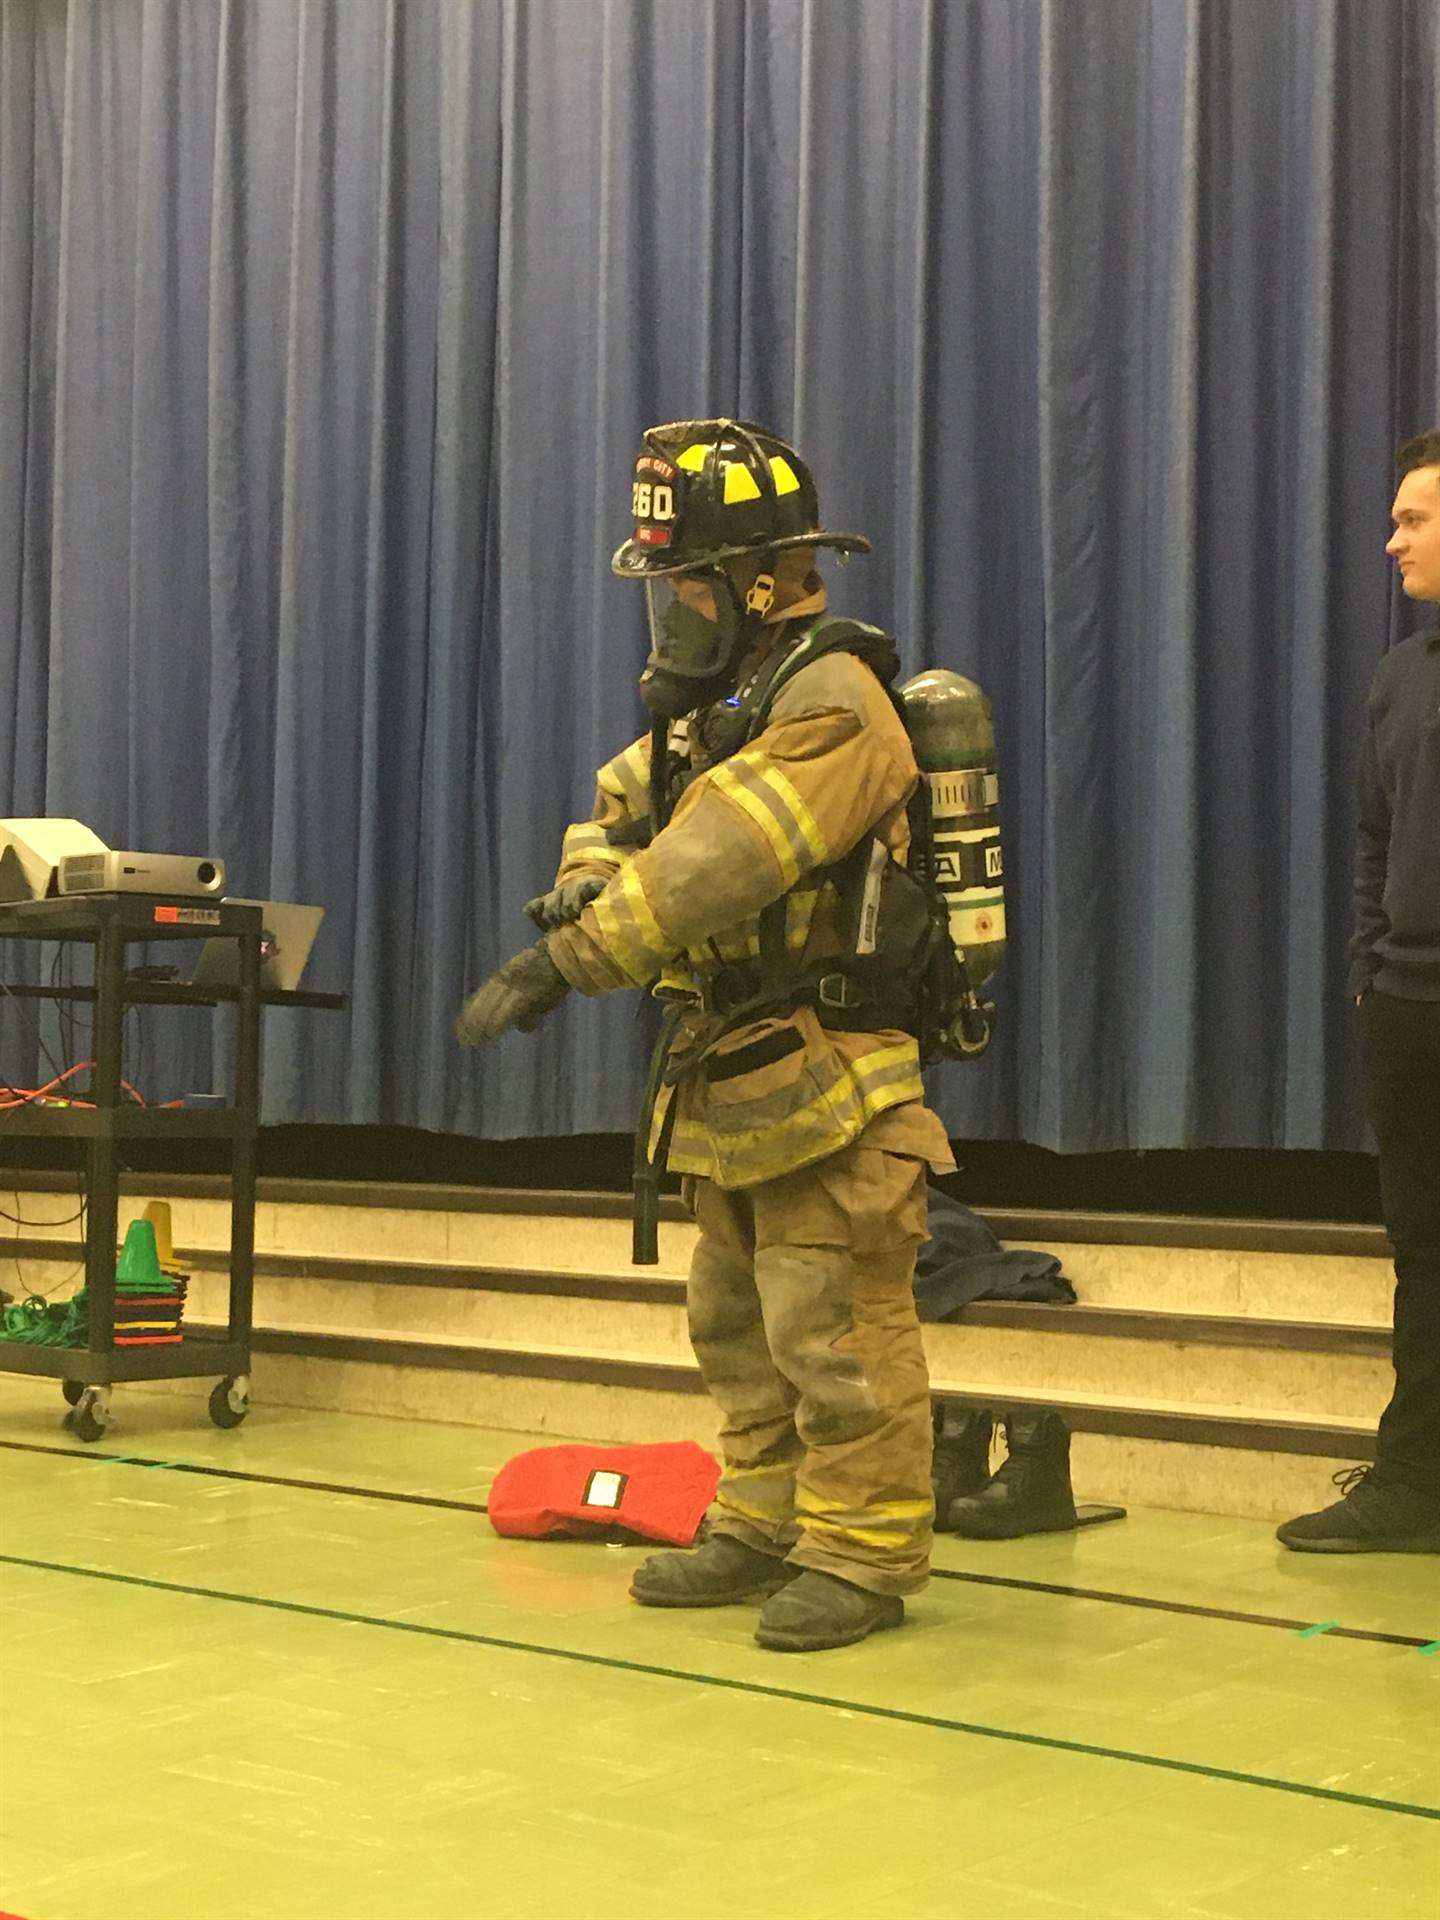 Firefighter puts on fire gear